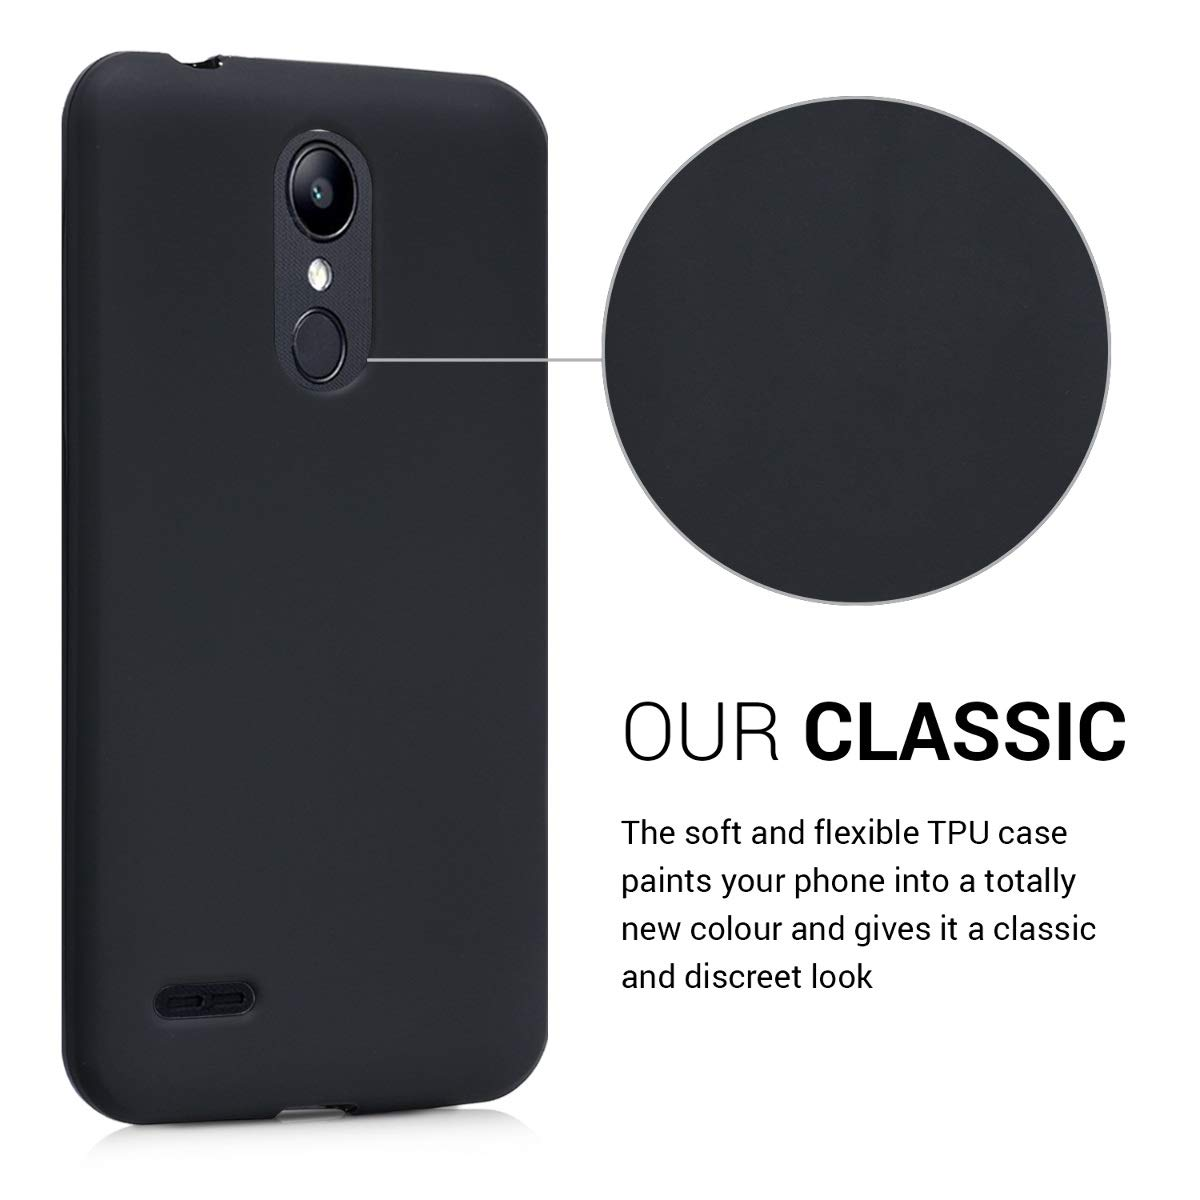 kwmobile TPU Silicone Case for LG K8 (2018) / K9 - Soft Flexible Shock Absorbent Protective Phone Cover - Black Matte